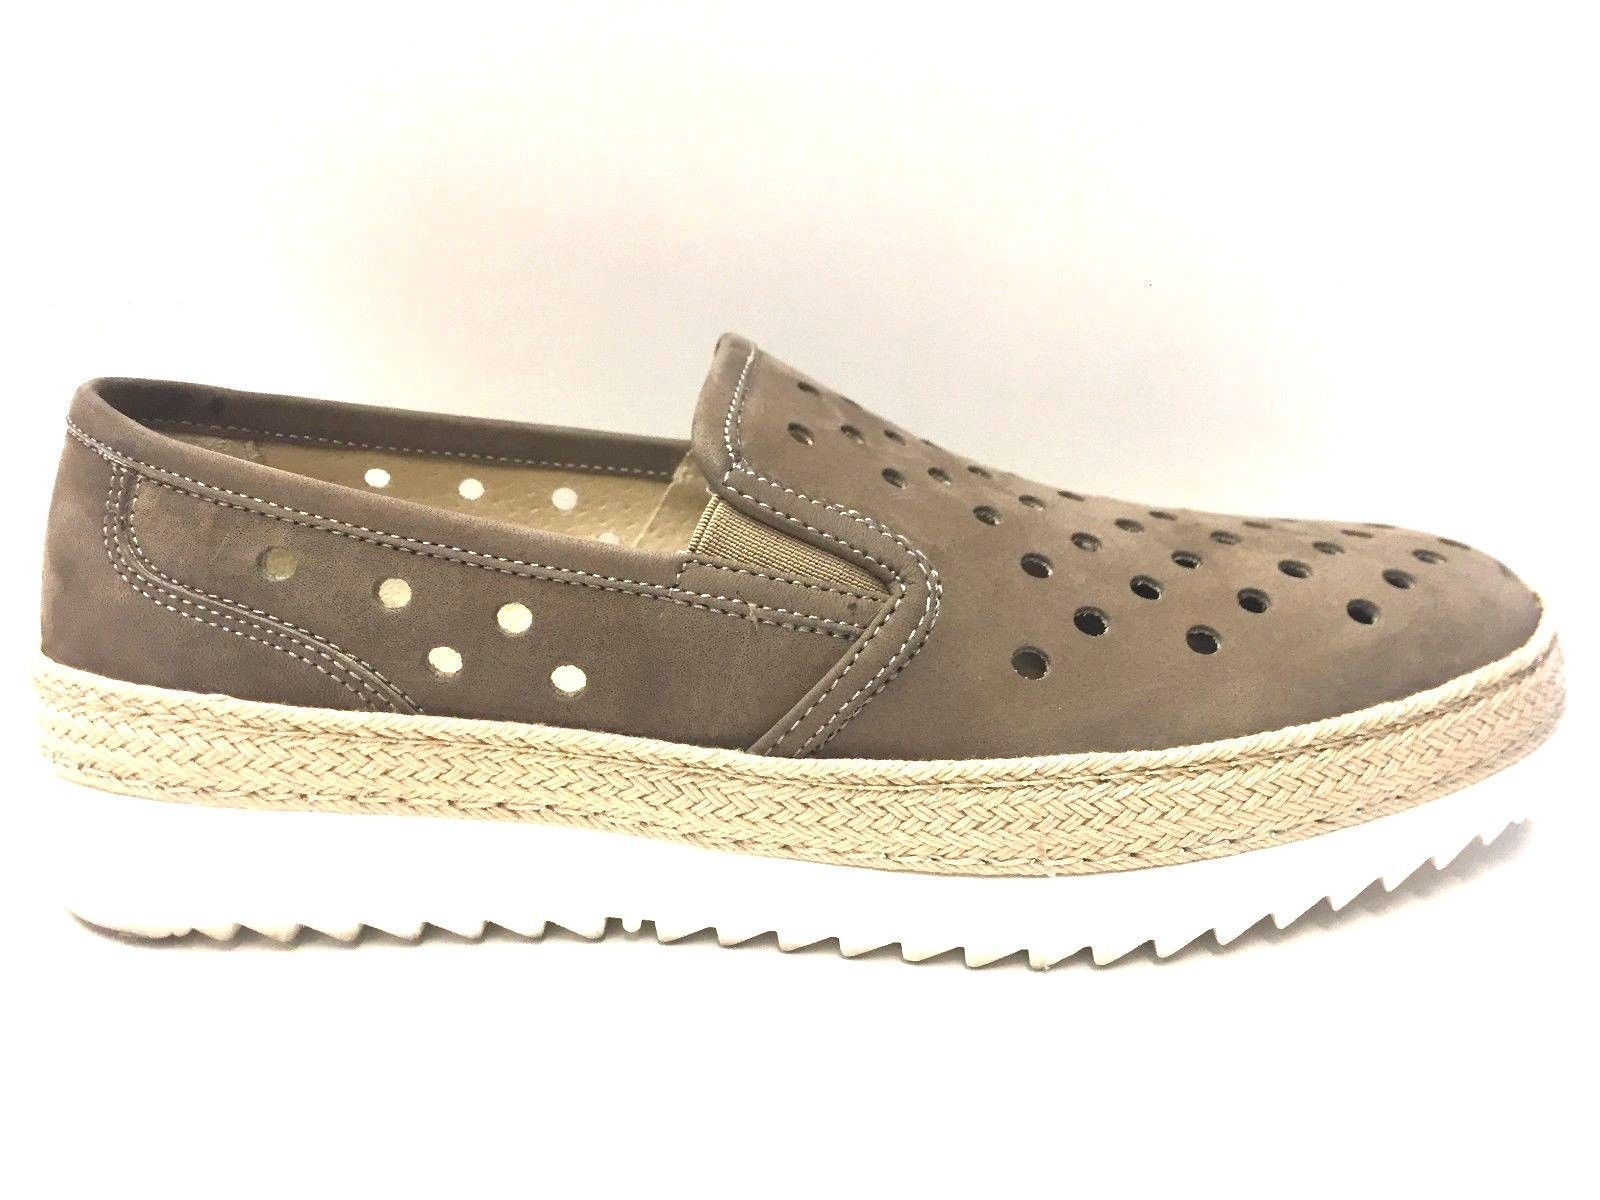 SCARPE SLIP ON MOCASSINI CASUAL DONNA SOLDINI ORIGINAL 19805 PELLE SHOES P/E NEW